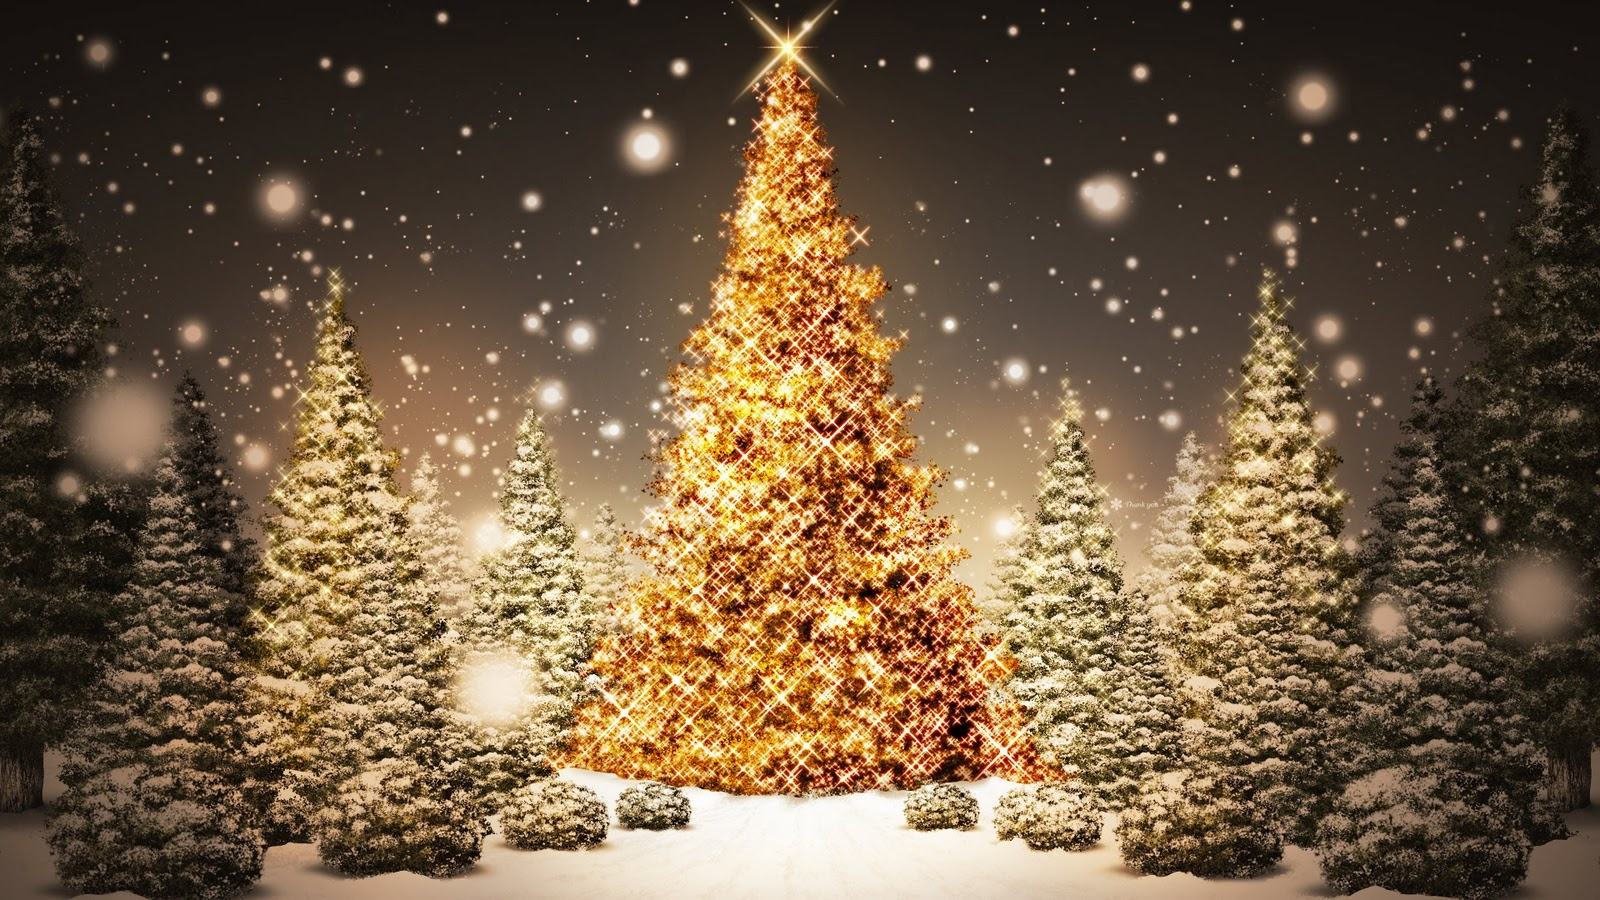 merry christmas desktop wallpapers free merry christmas